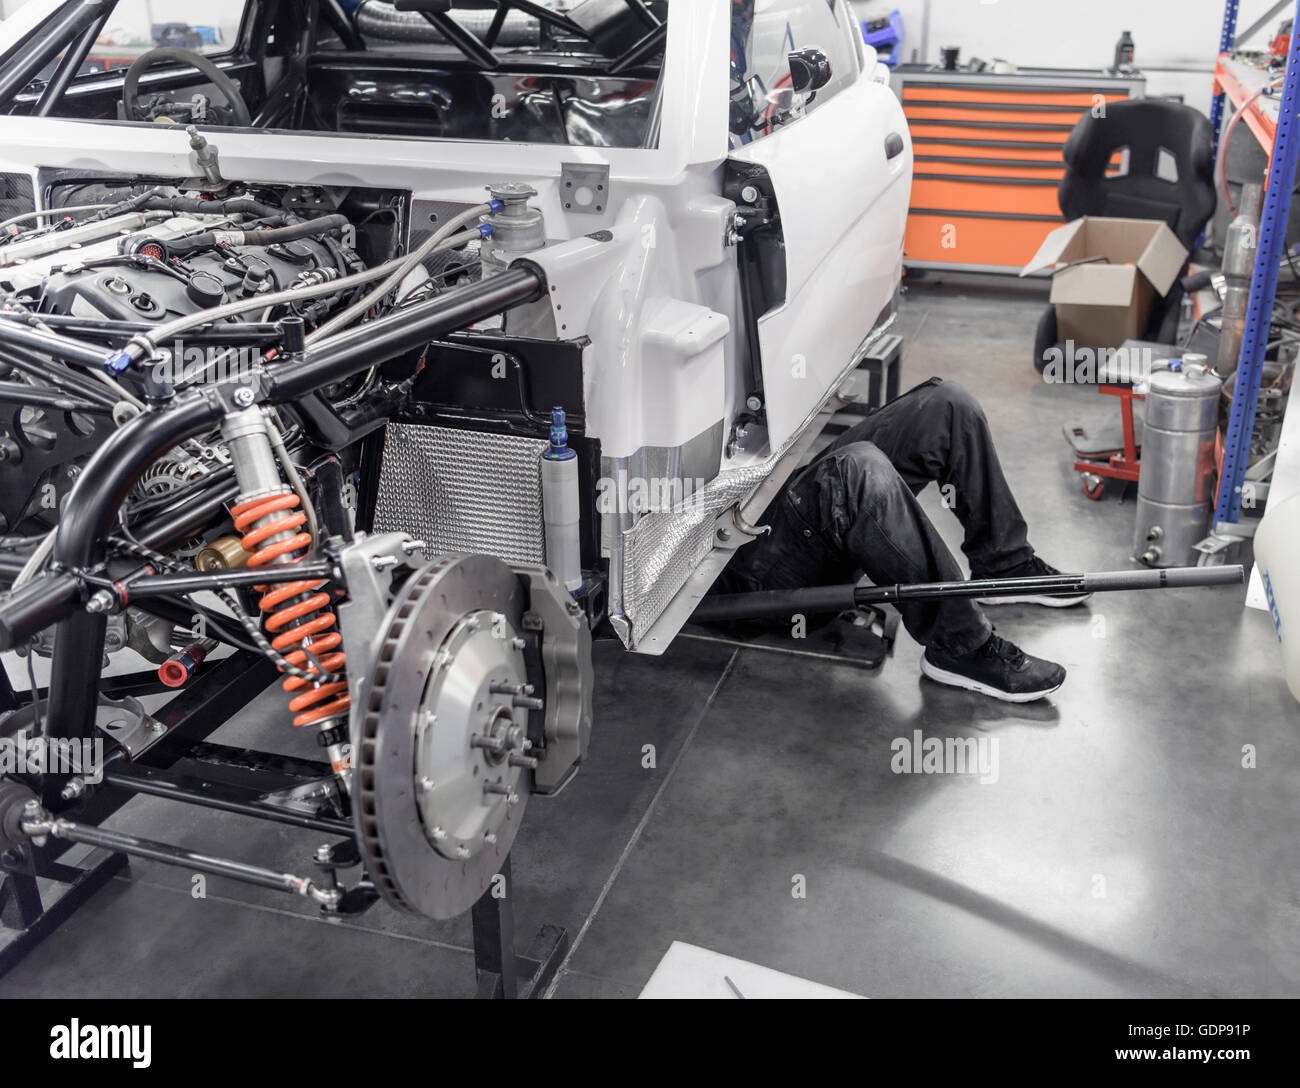 Ingegnere in auto in auto racing factory Immagini Stock